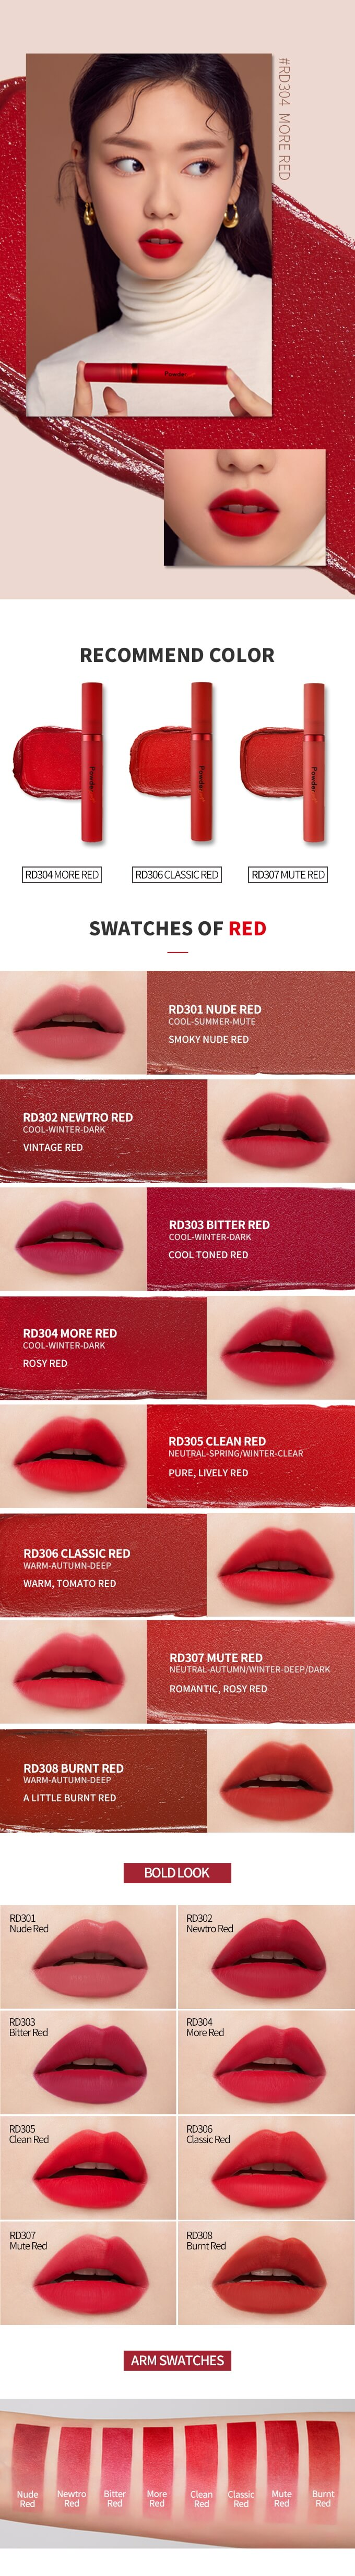 Etude House Powder Rouge Tint [#08 RD308 Burnt Red]